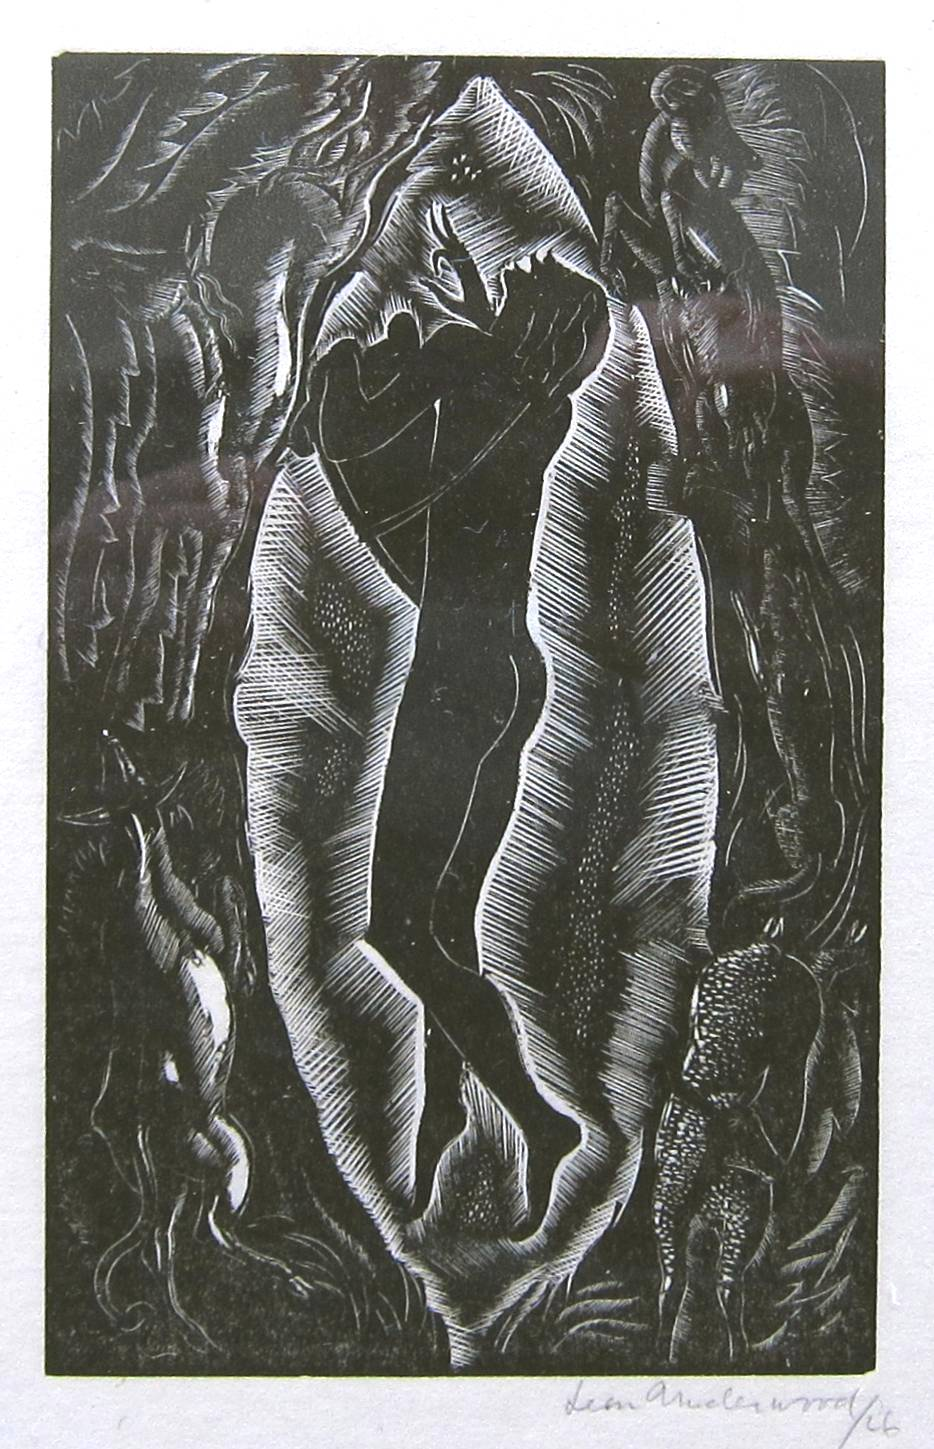 Lot 44 - LEON UNDERWOOD [1890-1975]. Music From Behind the Moon 1V, 1926. wood-engraving, edition of 25 [1/